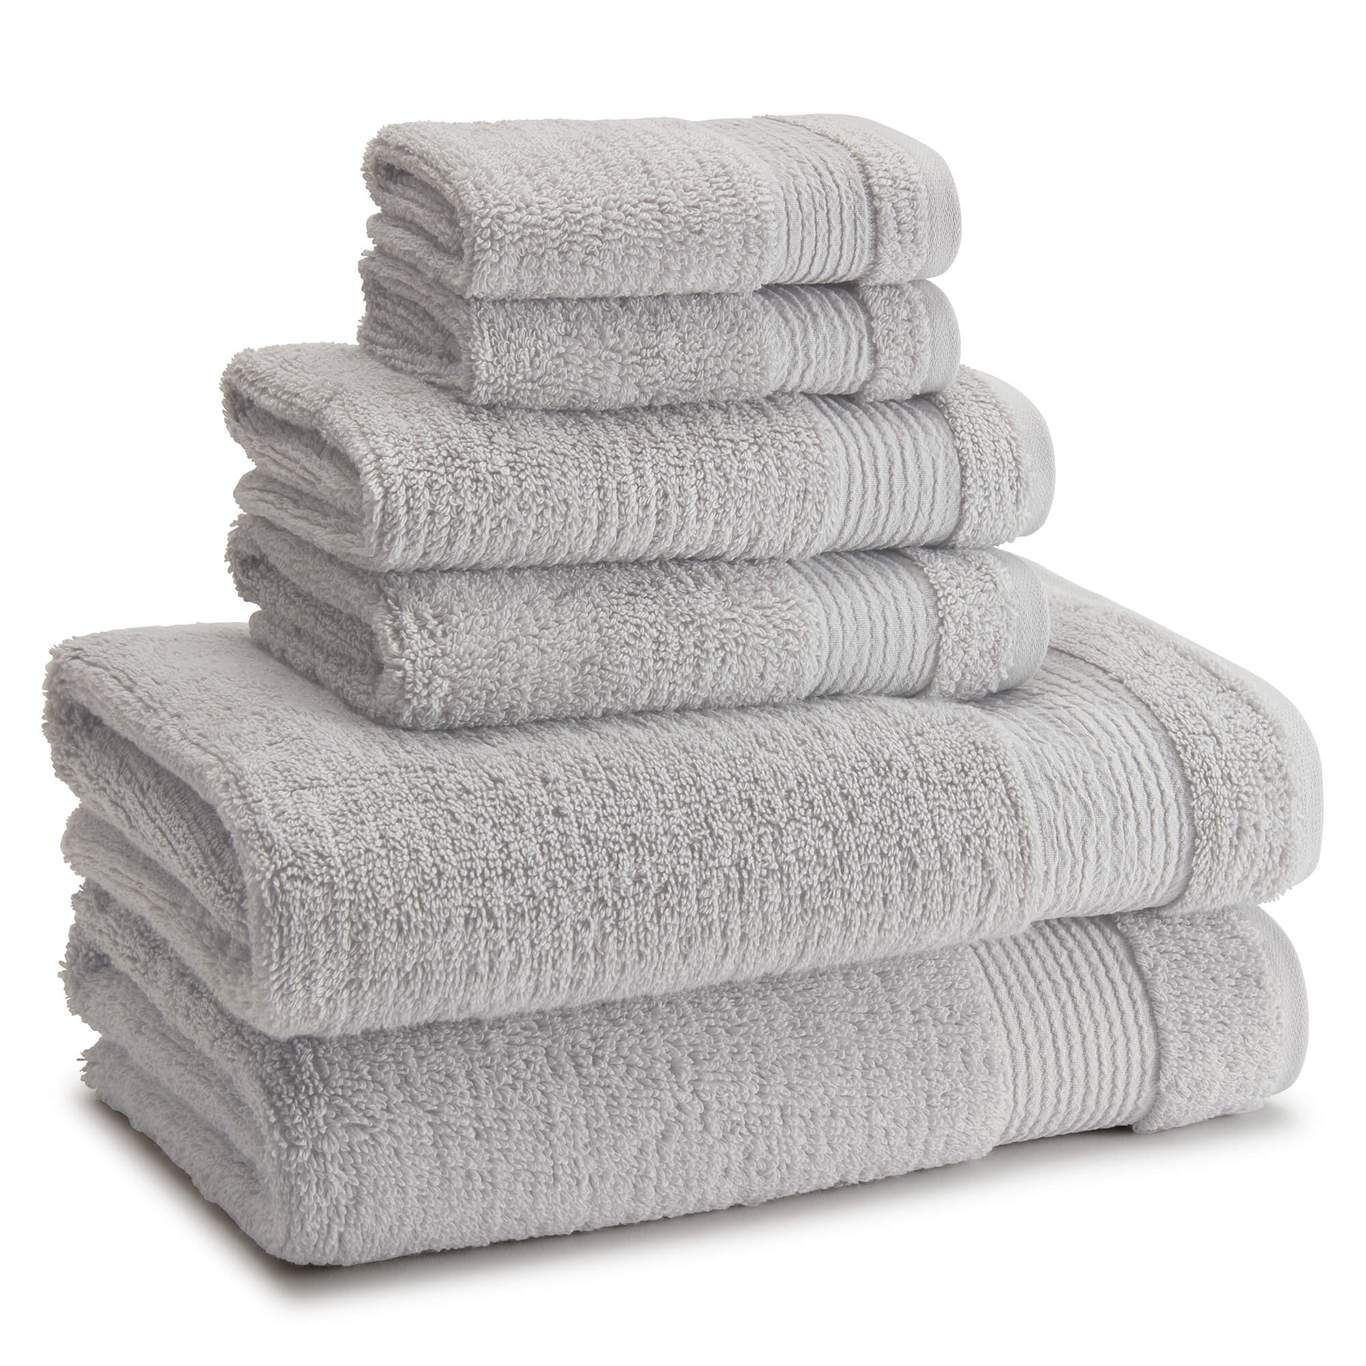 Pergamon Turkish Towels With Images Turkish Towels Towel